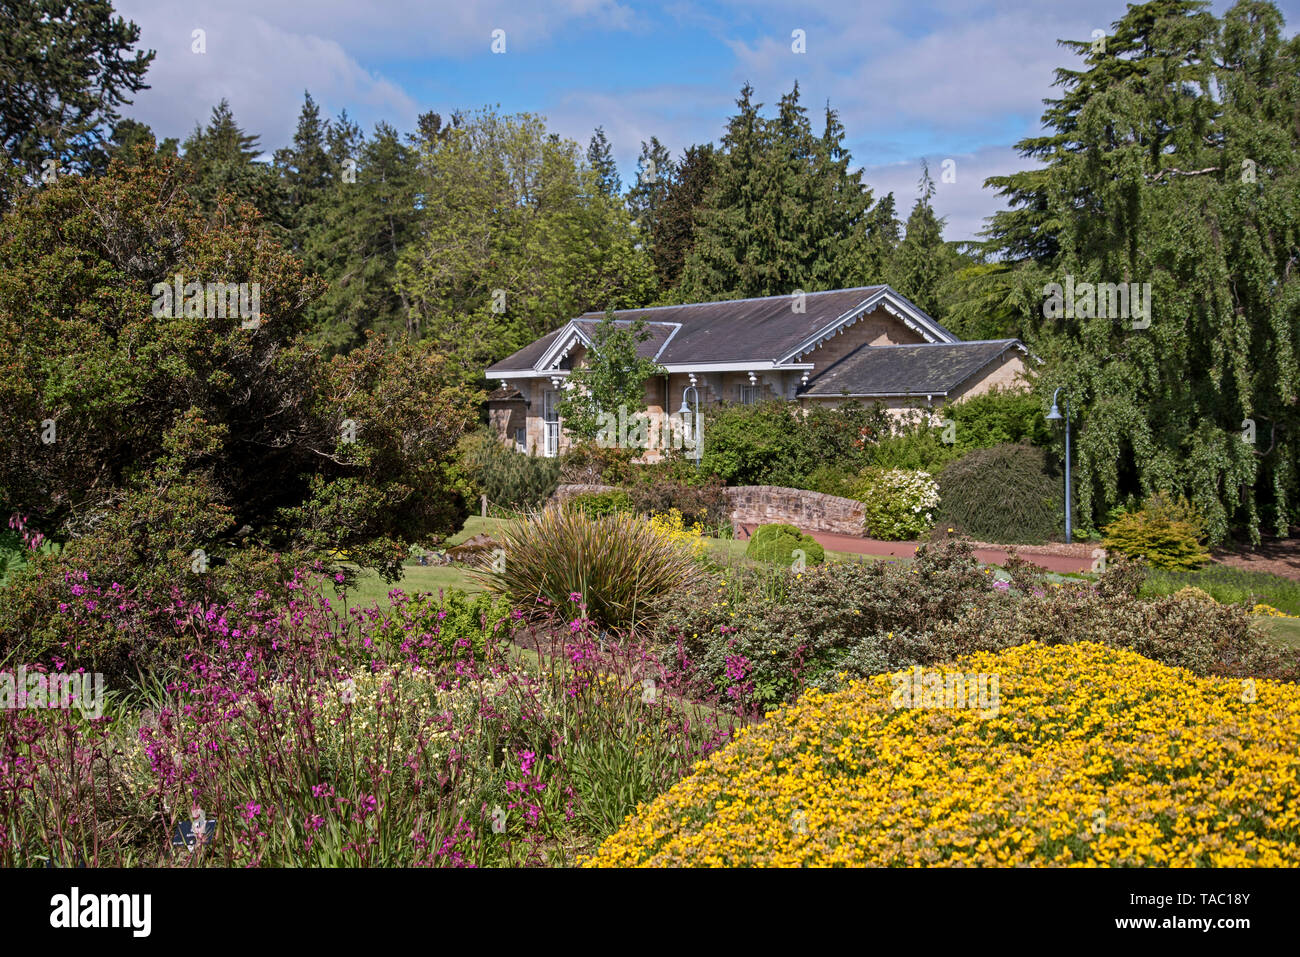 Rock Garden and Caledonia Hall in the Royal Botanic Garden Edinburgh (RBGE), Scotland, UK. - Stock Image